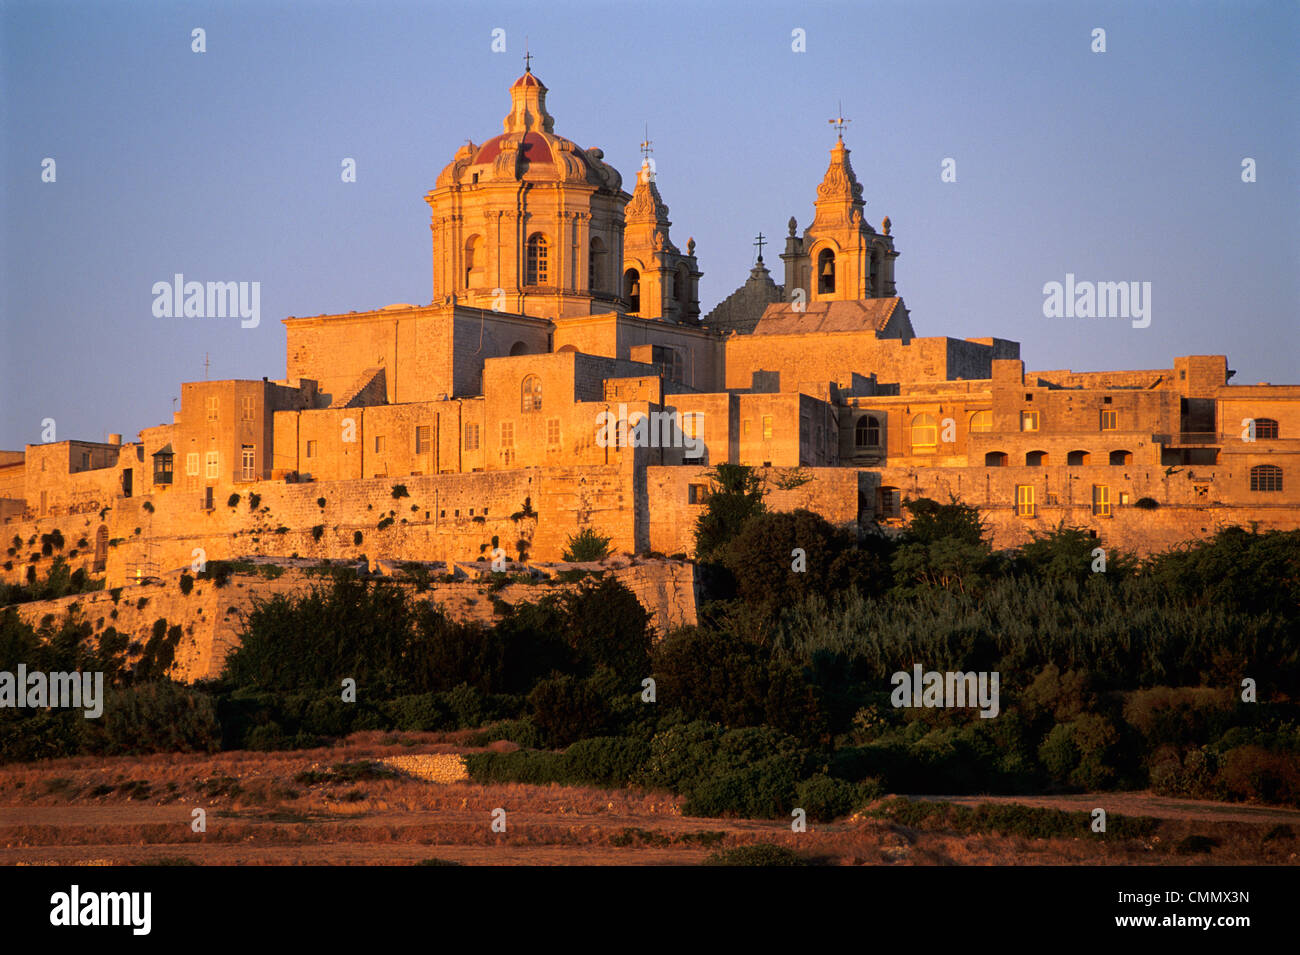 St. Paul's Cathedral and city walls, Mdina, Malta, Mediterranean, Europe Stock Photo